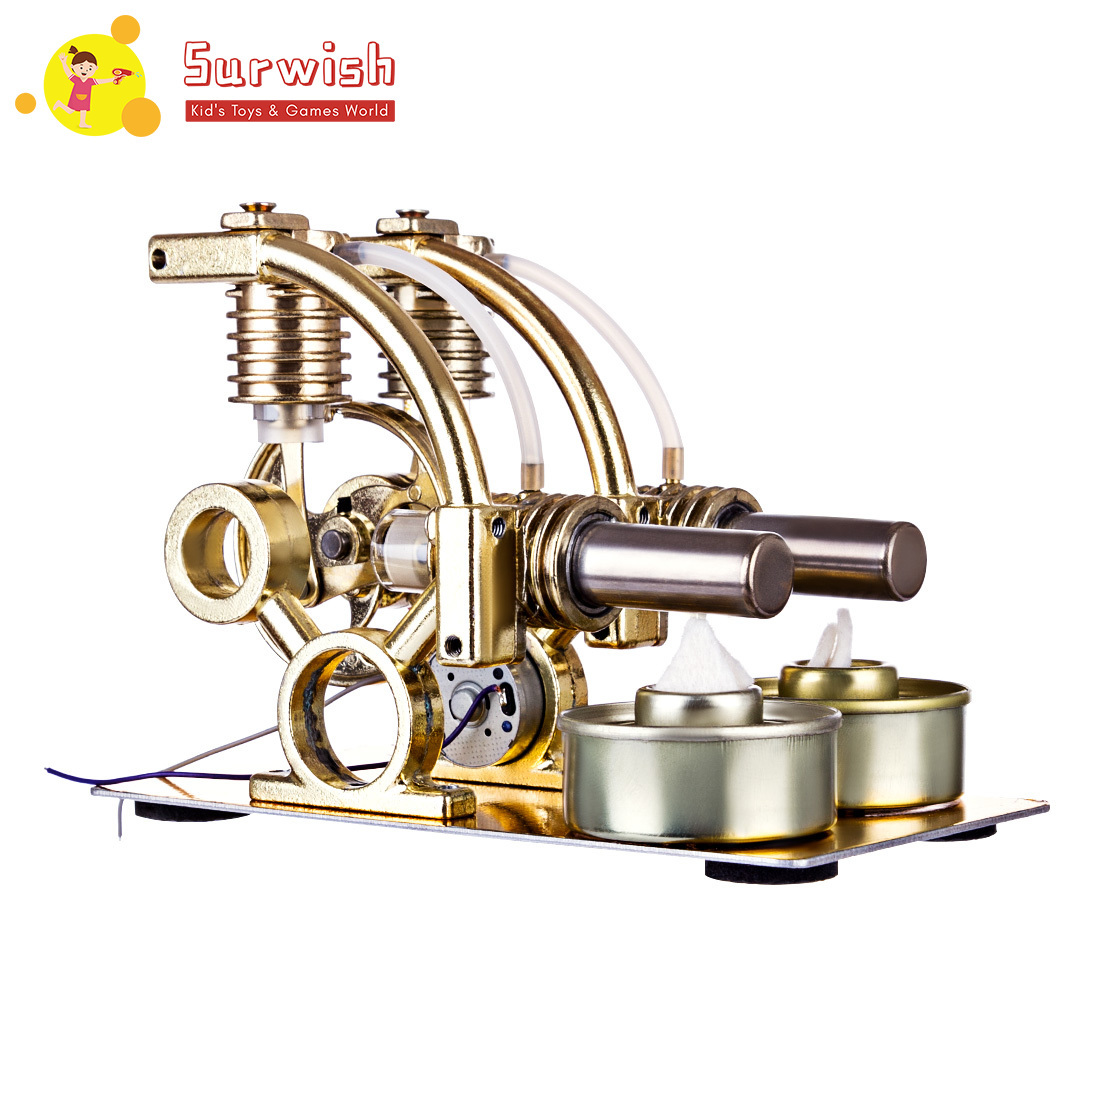 4 Type 1 Pcs Single Cylinder Balance Stirling Engine Model Science Experiment Kit With All-Metal Base High Quality